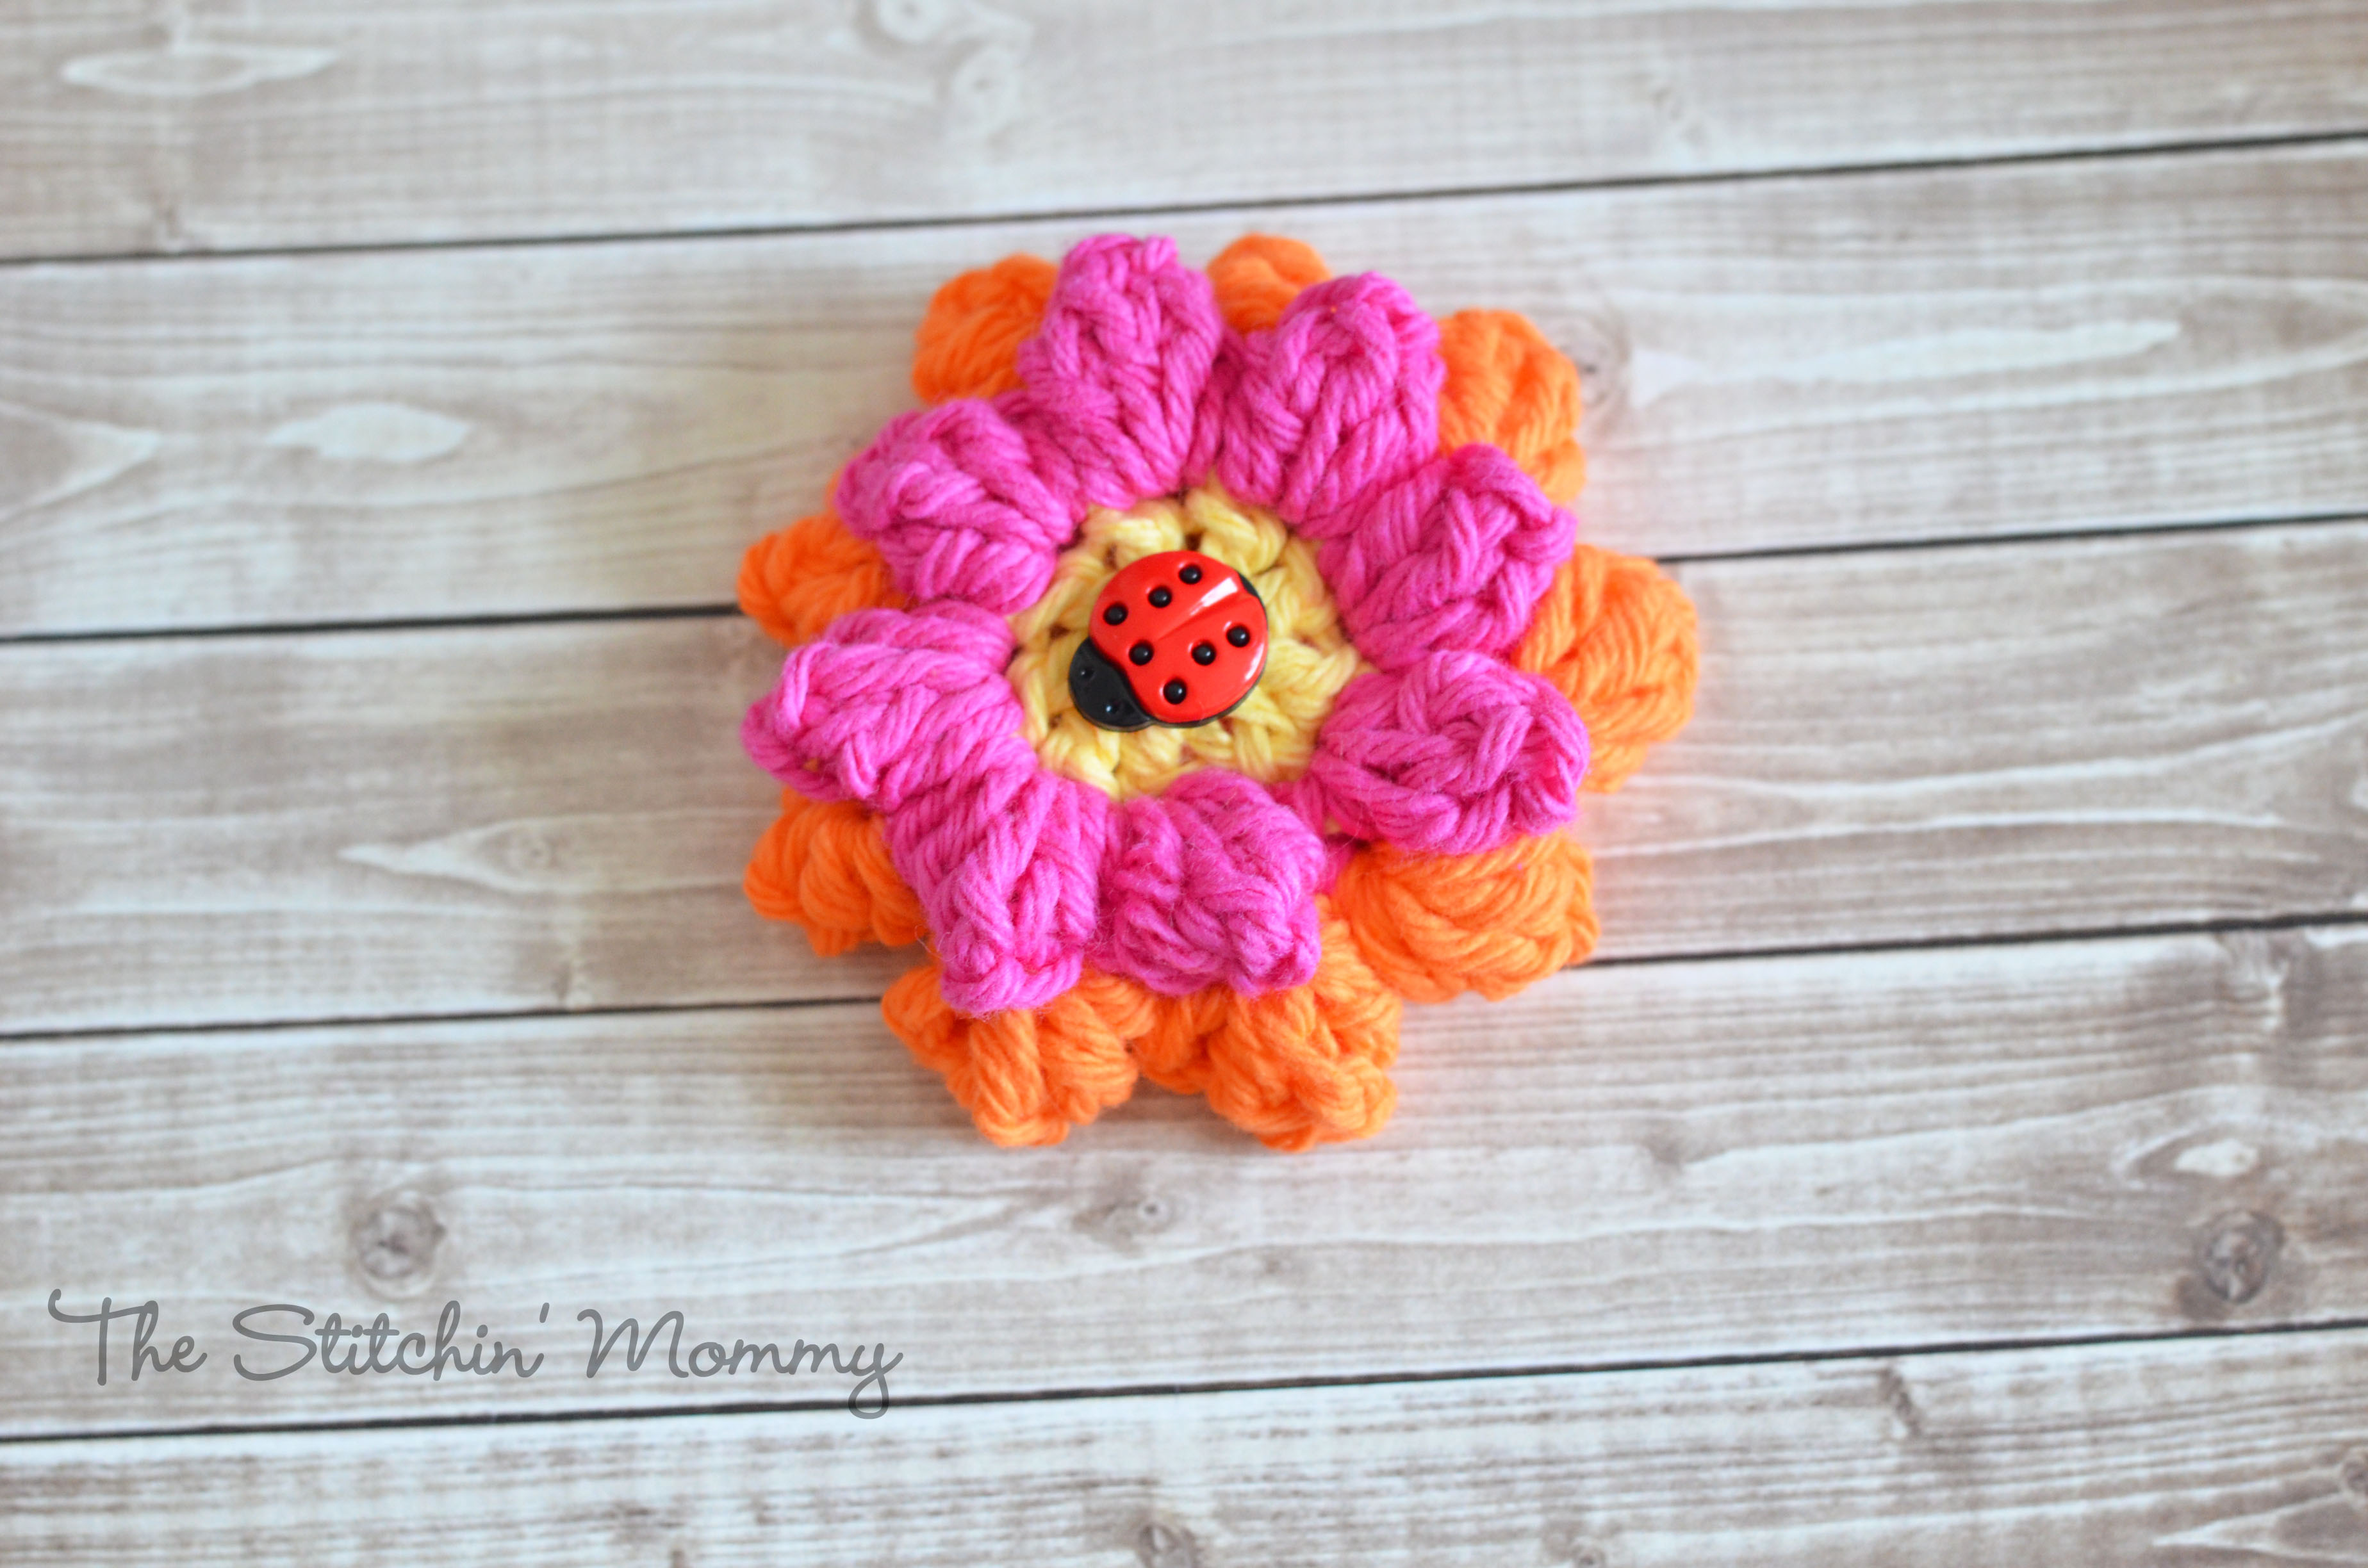 Free Pattern] Learn How To Make A Cute Crochet Popcorn Flower With A ...